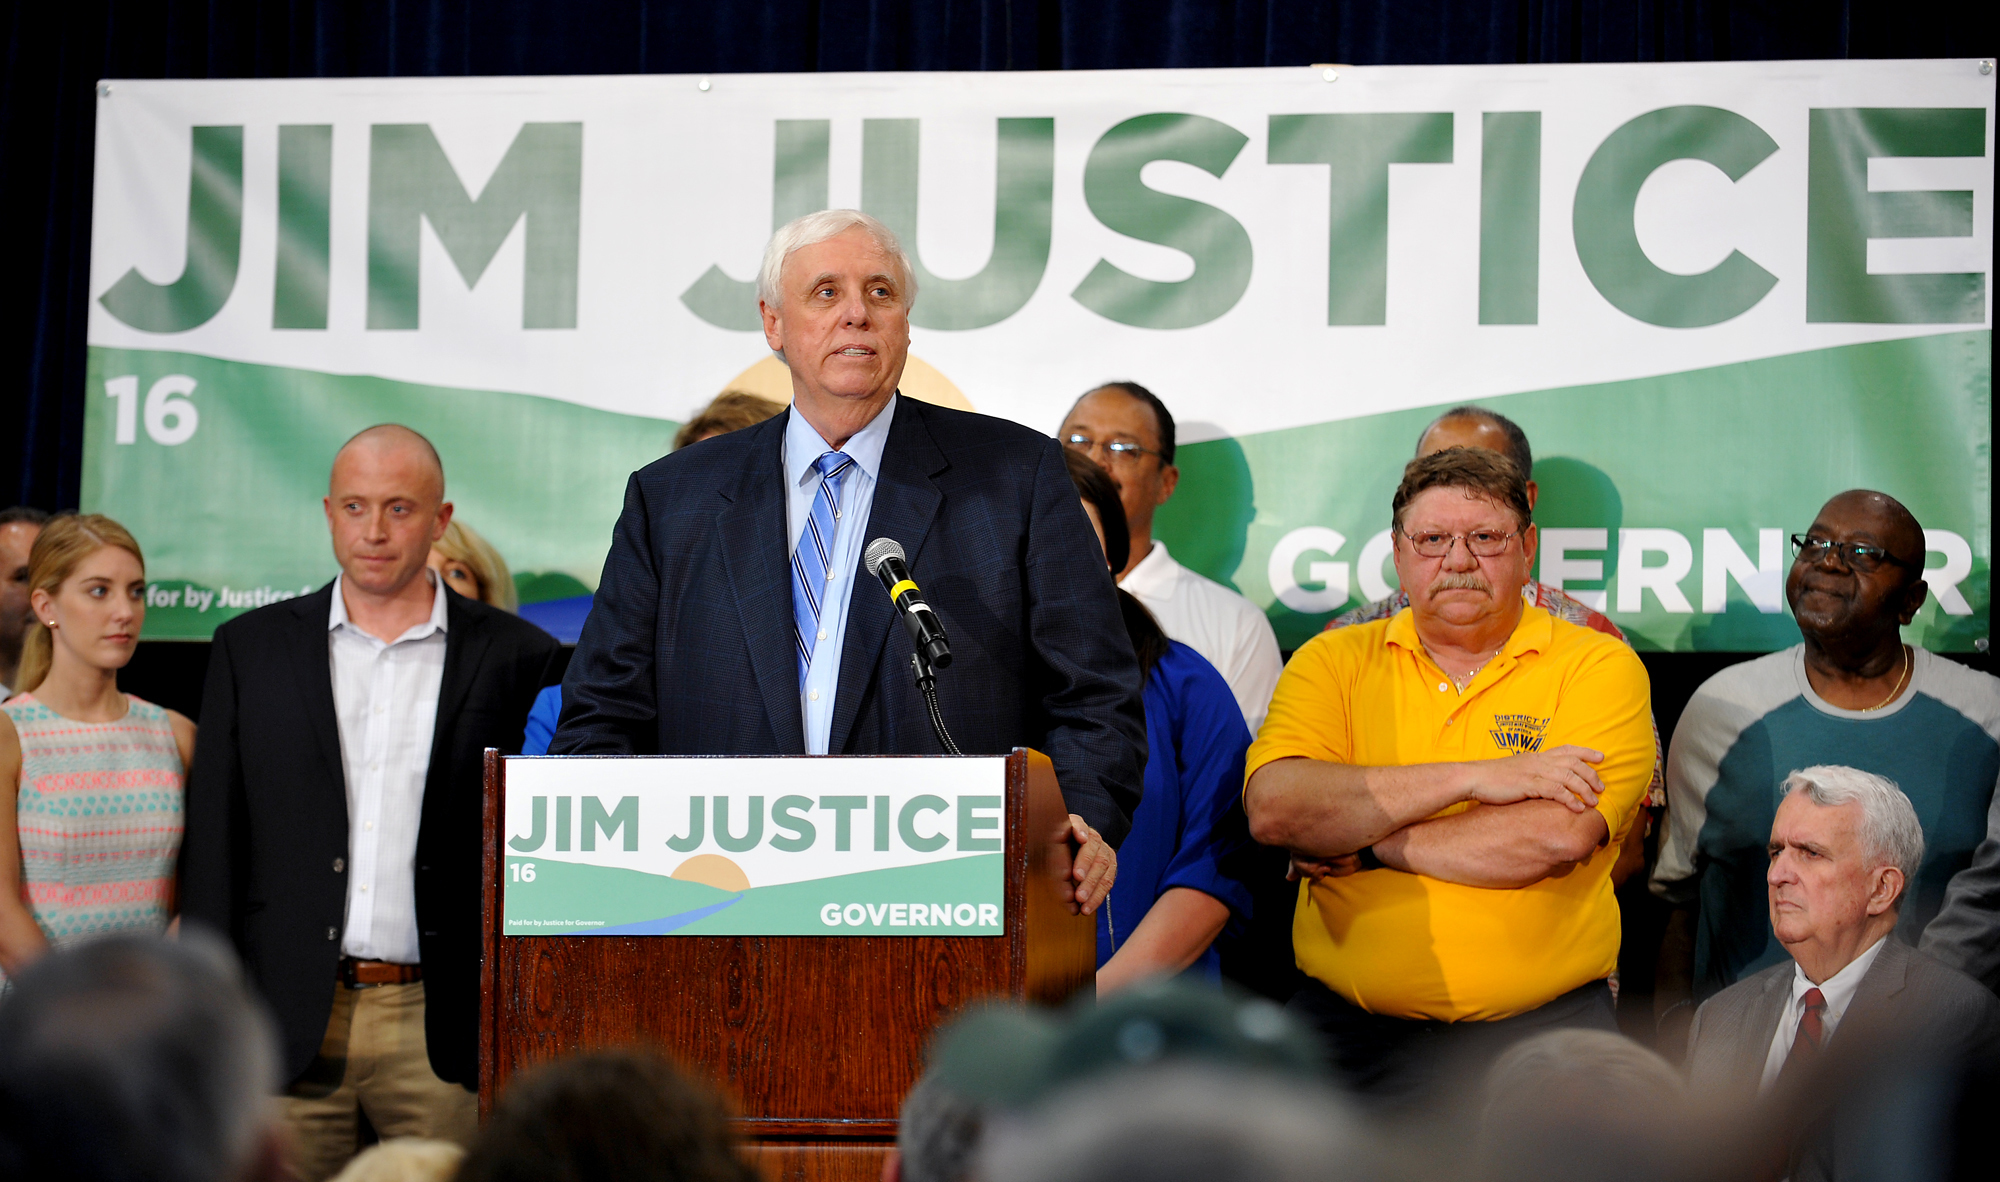 West Virginia billionaire businessman Jim Justice announced his run for governor of West Virginia as a Democrat in White Sulphur Springs, W.Va., on May 11, 2015.